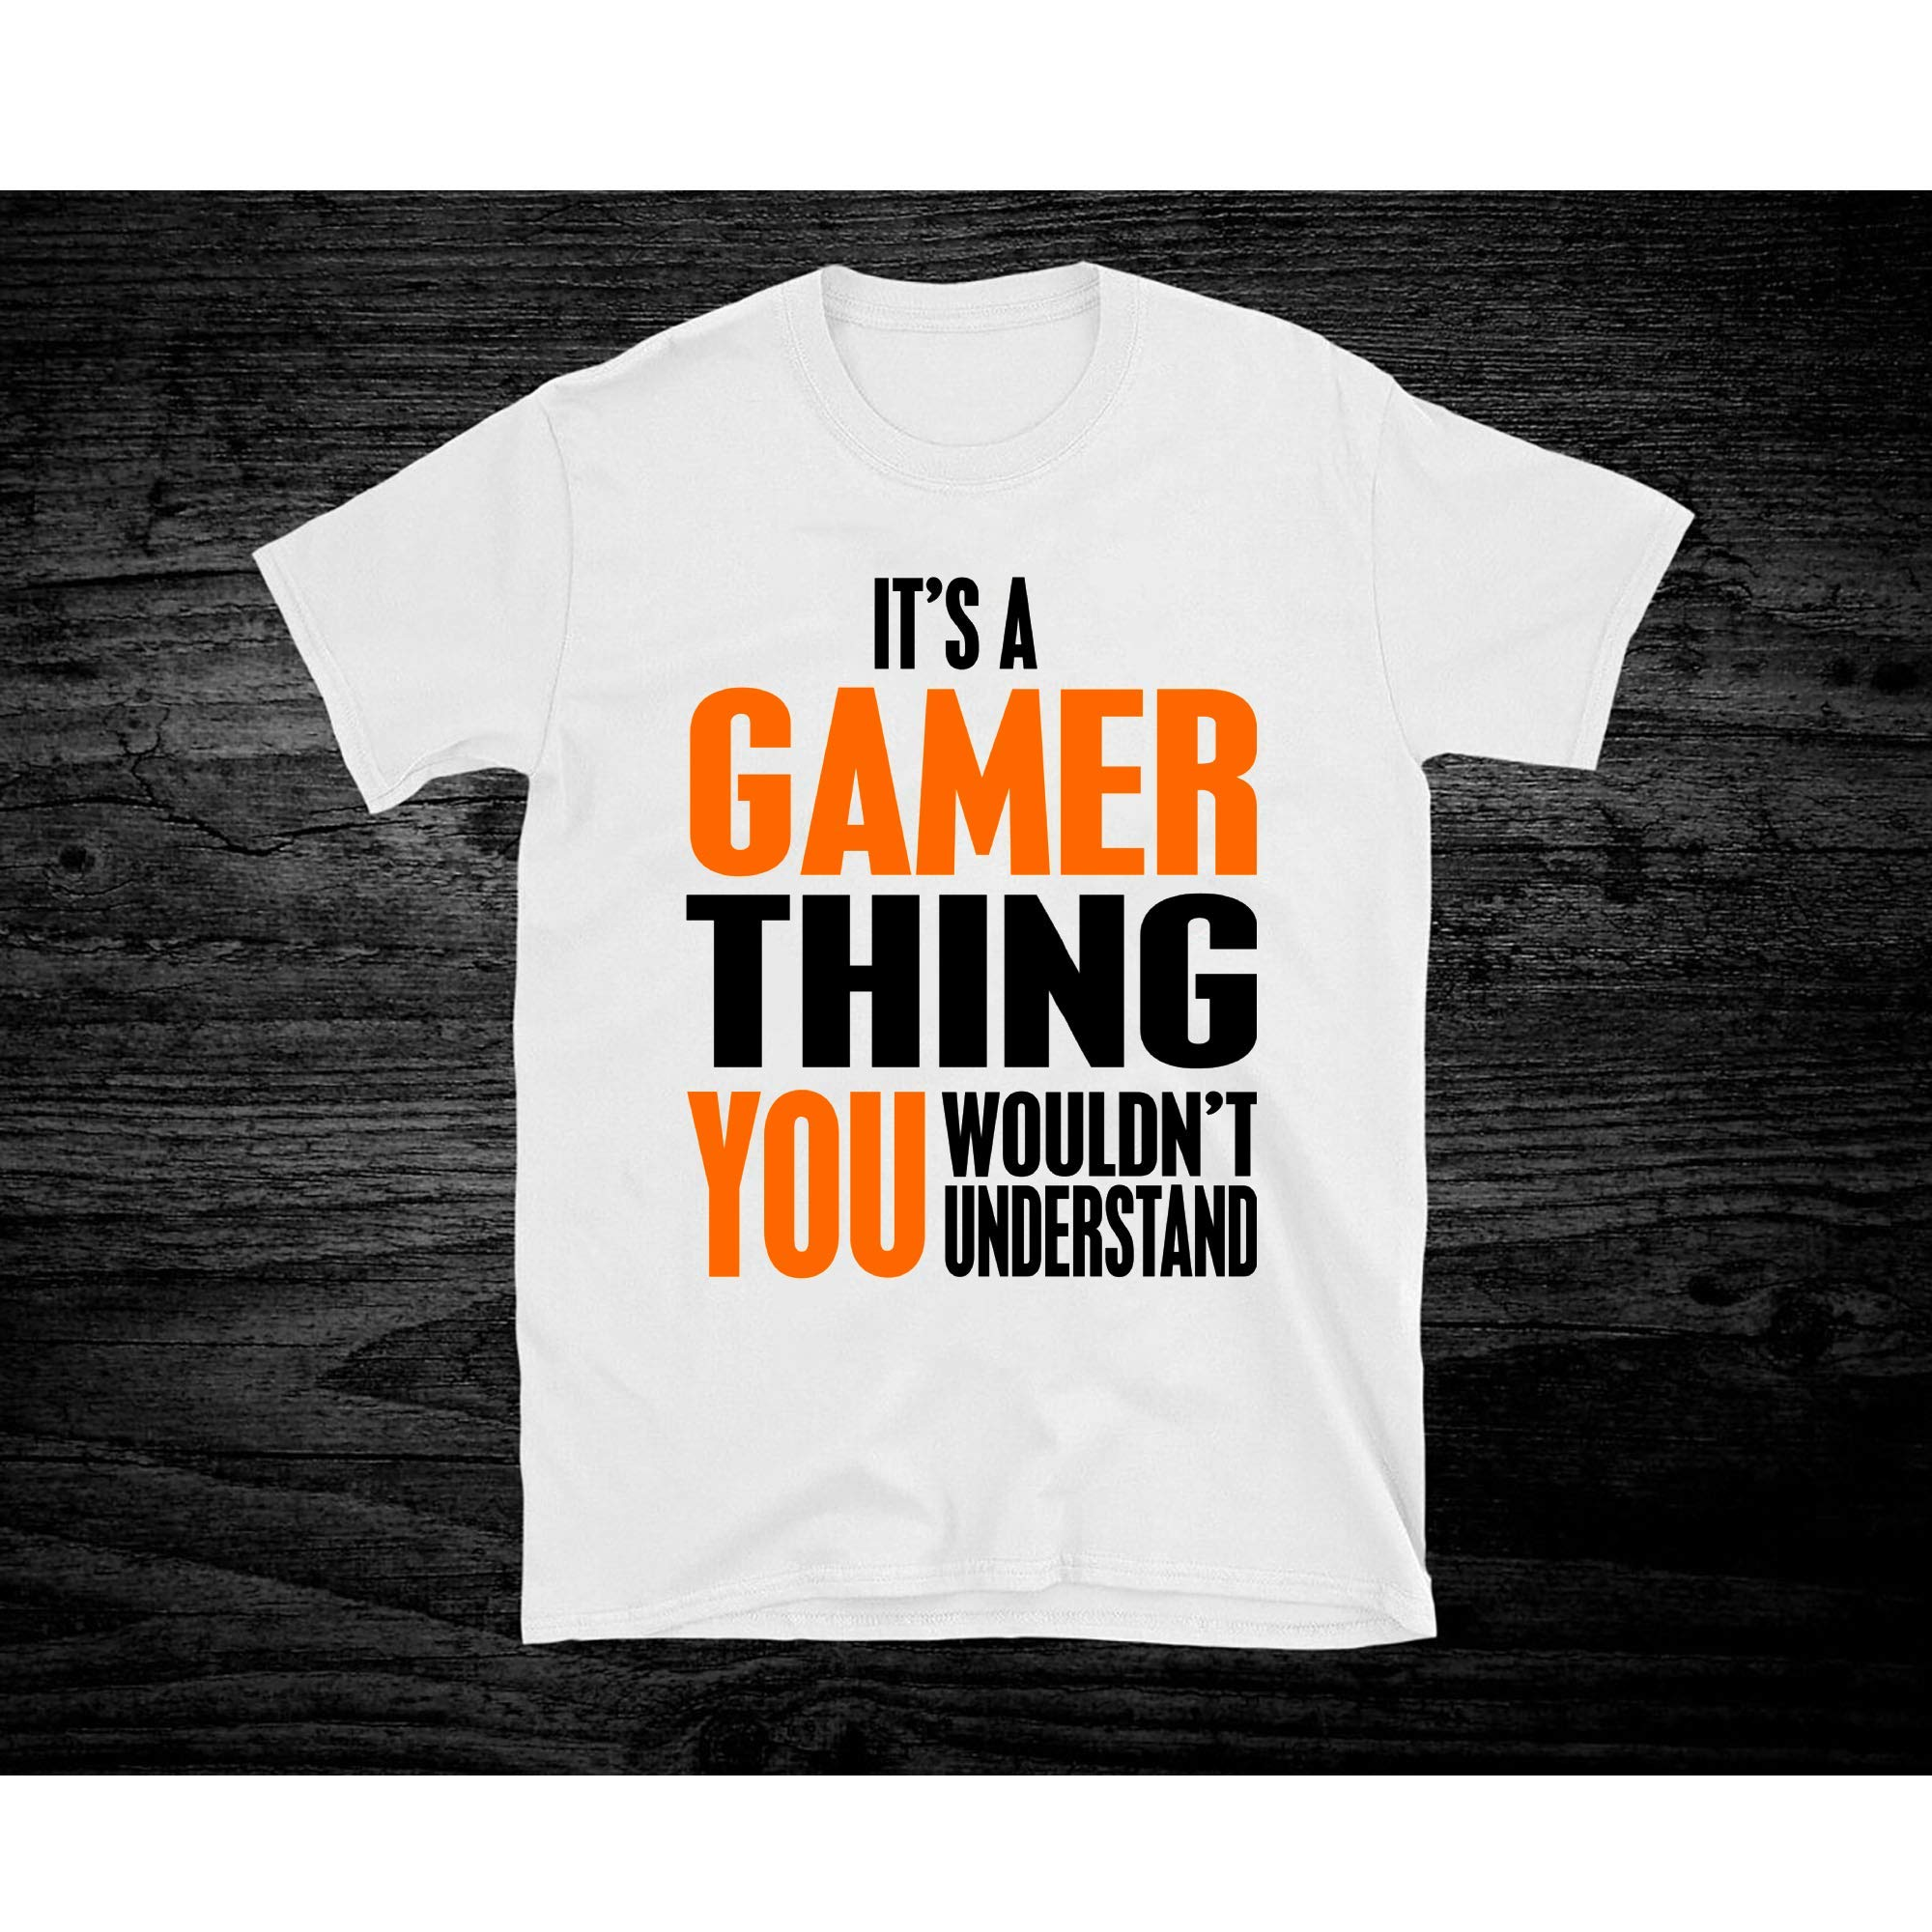 It S A Gamer Thing You Wouldn T Understand 52 For Men Women Unisex Shirts